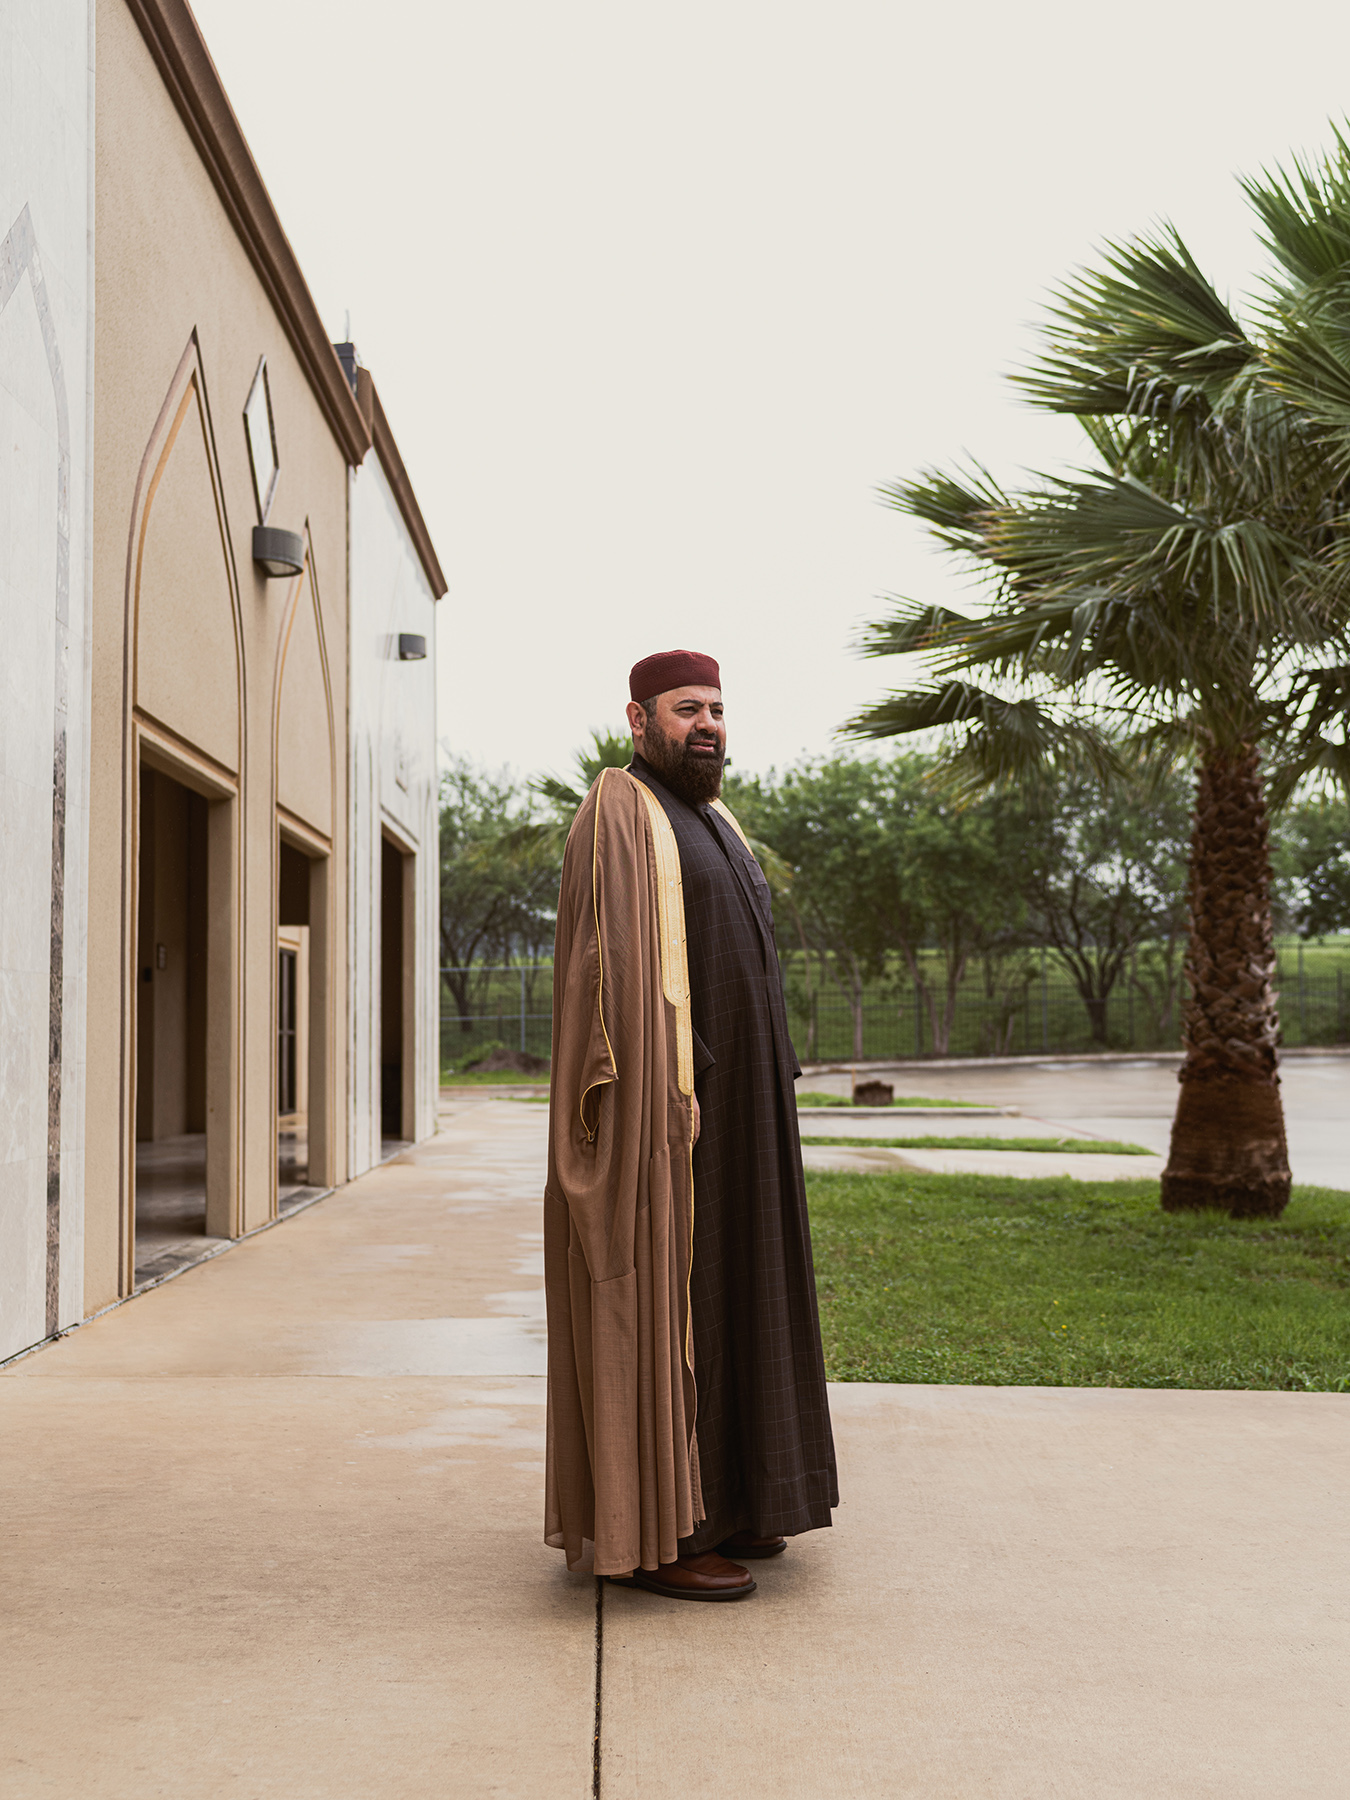 Imam Yusuf Said, Phd,  poses for a portrait outside the Islamic Center of San Antonio on Wed April 22nd, 2020. (Josh Huskin for Texas Monthly)